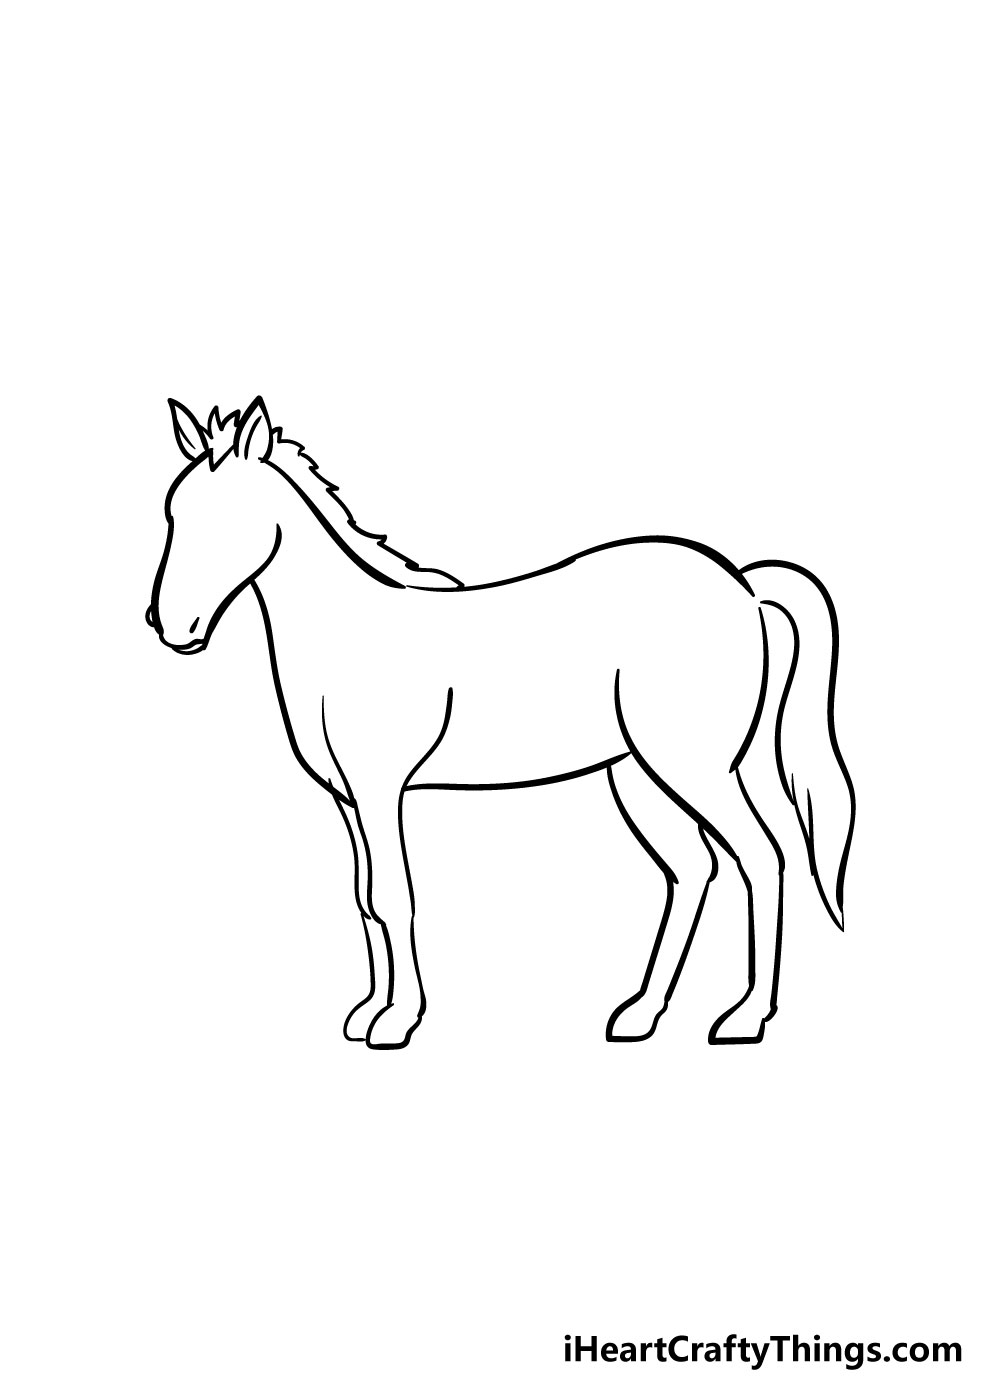 horse drawing step 6